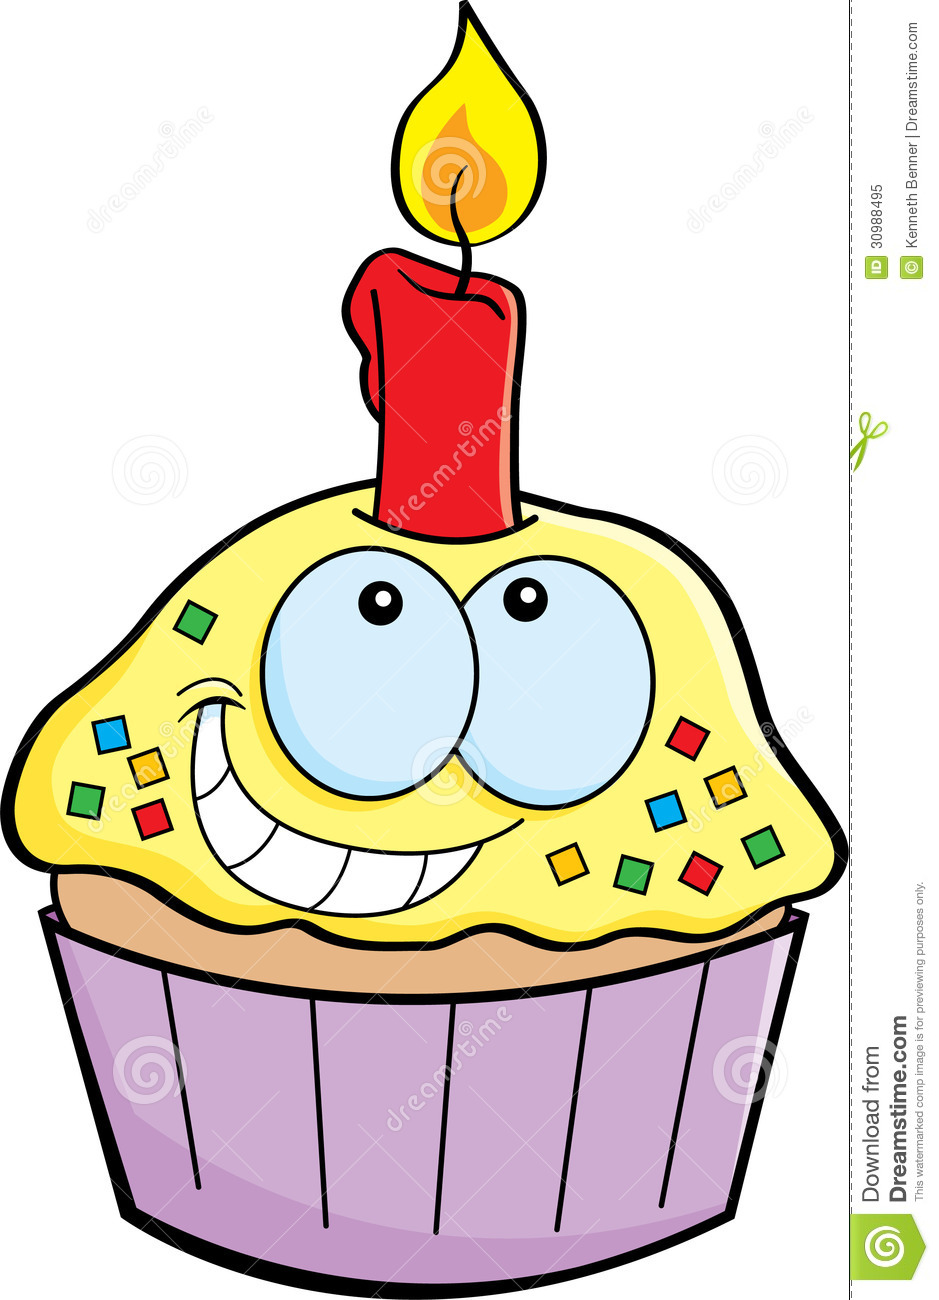 Cartoon Cupcake With A Candle Royalty Free Stock Photo - Image ...